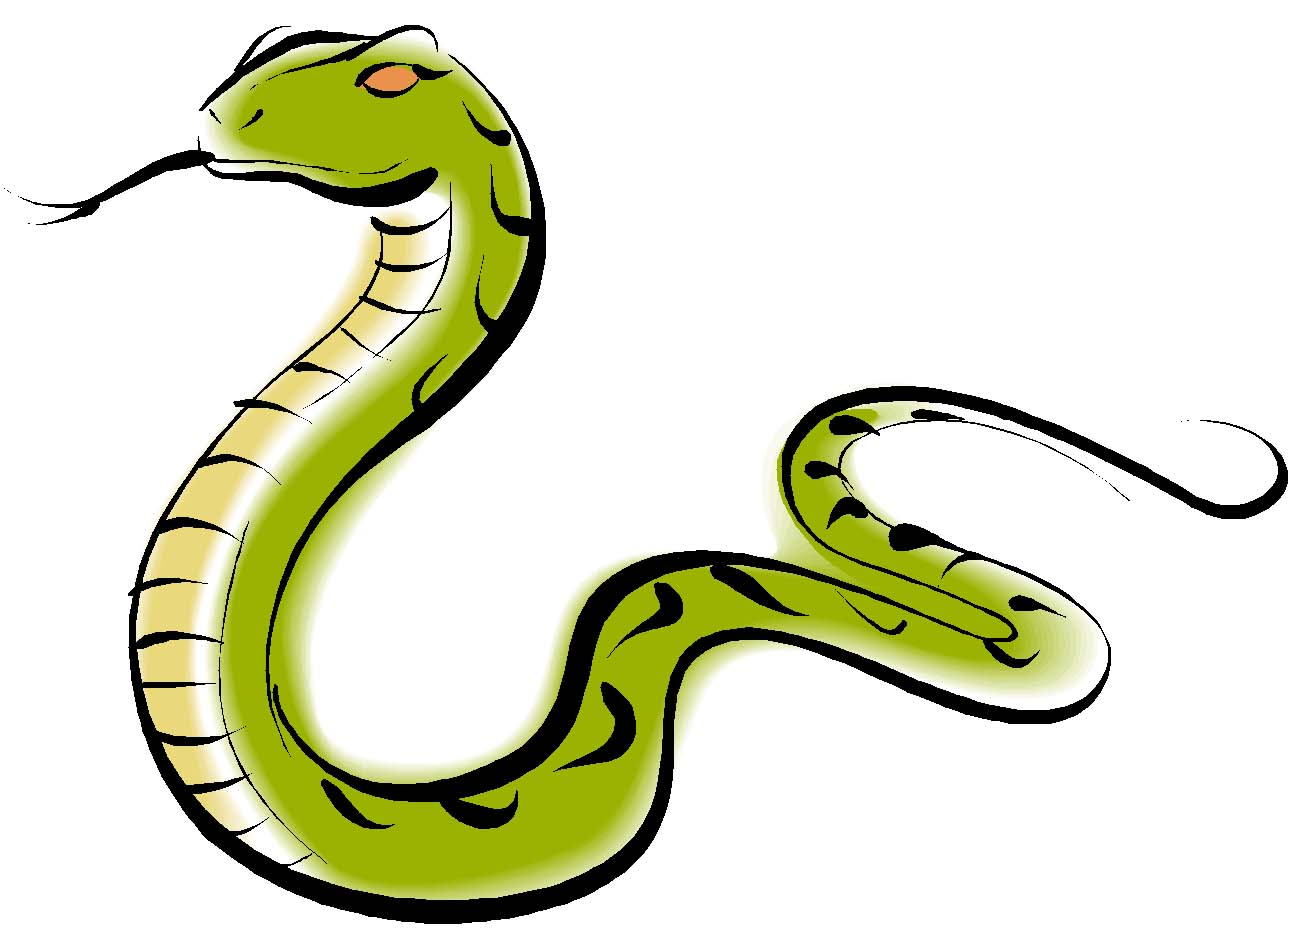 Free Snake Clipart, Download Free Clip Art, Free Clip Art on.